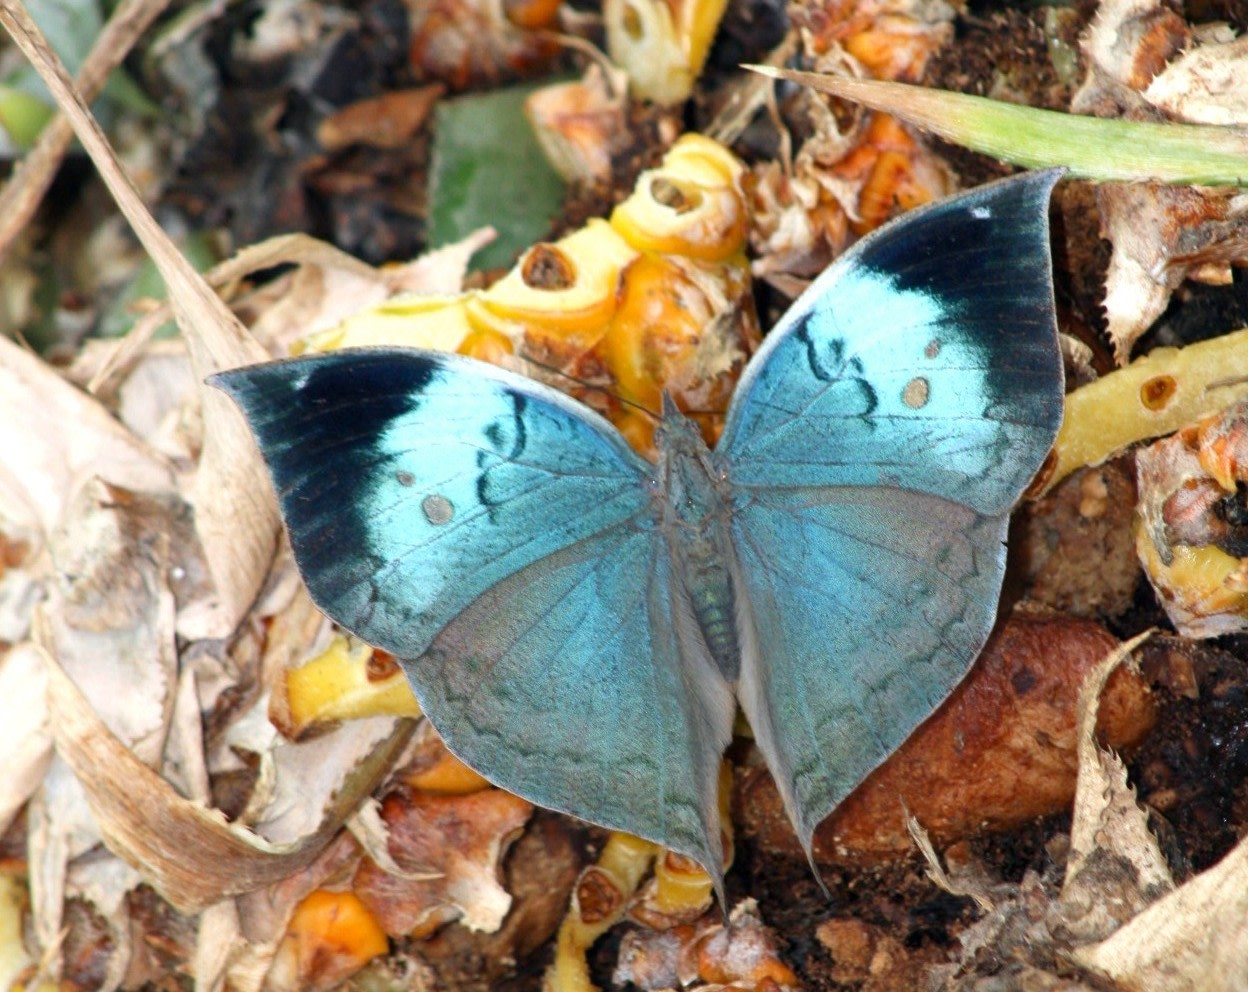 Once the blue oakleaf opens its wings it hardly seems like the same butterfly that merged with the dried leaves and brown bark of the forest. Photo: Dr. Raju Kasambe - CC BY-SA 4.0